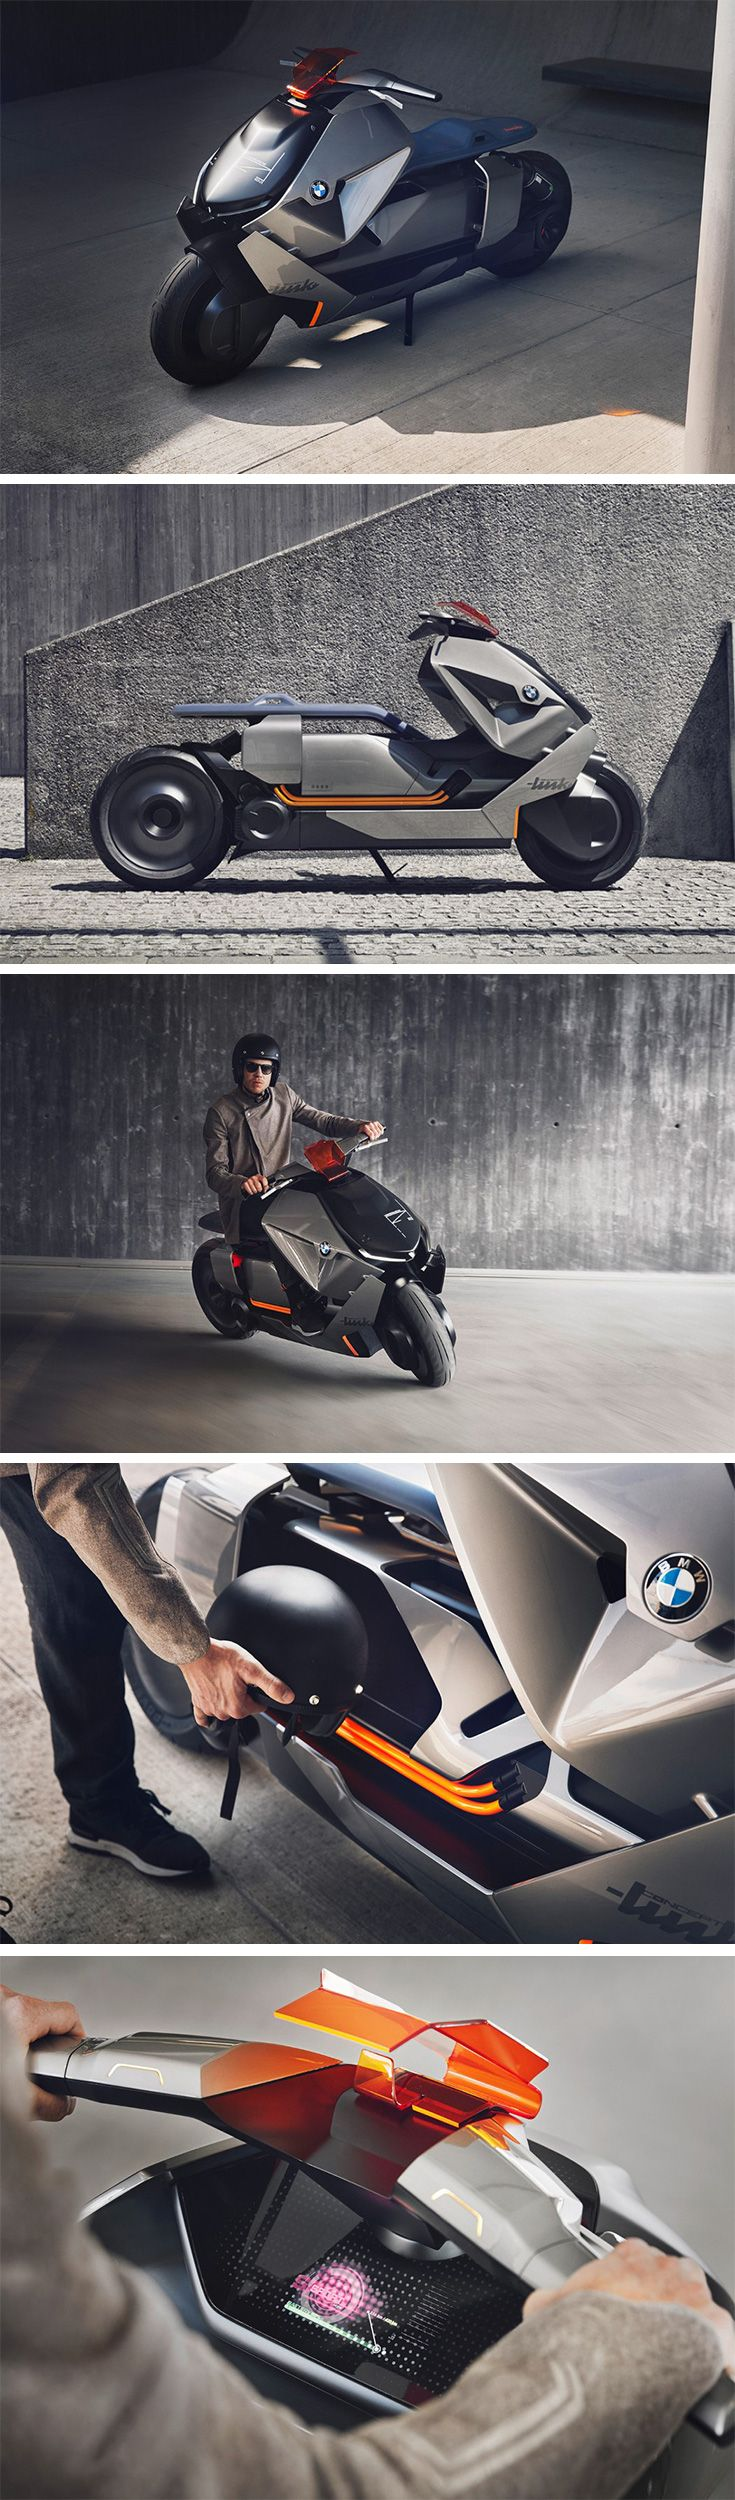 The BMW Motorrad Concept Link is envisioned to be a fully electric, zero-emissions ride and even features a reverse gear! The design by far is the most interesting. The e-scooter is broad, dominating, low-slung, and you immediately notice the majority of horizontal straight lines making it feel like the scooter is zipping forward. Looking like it was picked right out of a transportation designer's sketchbook, the scooter's aesthetic and silhouette are immediately striking and novel.